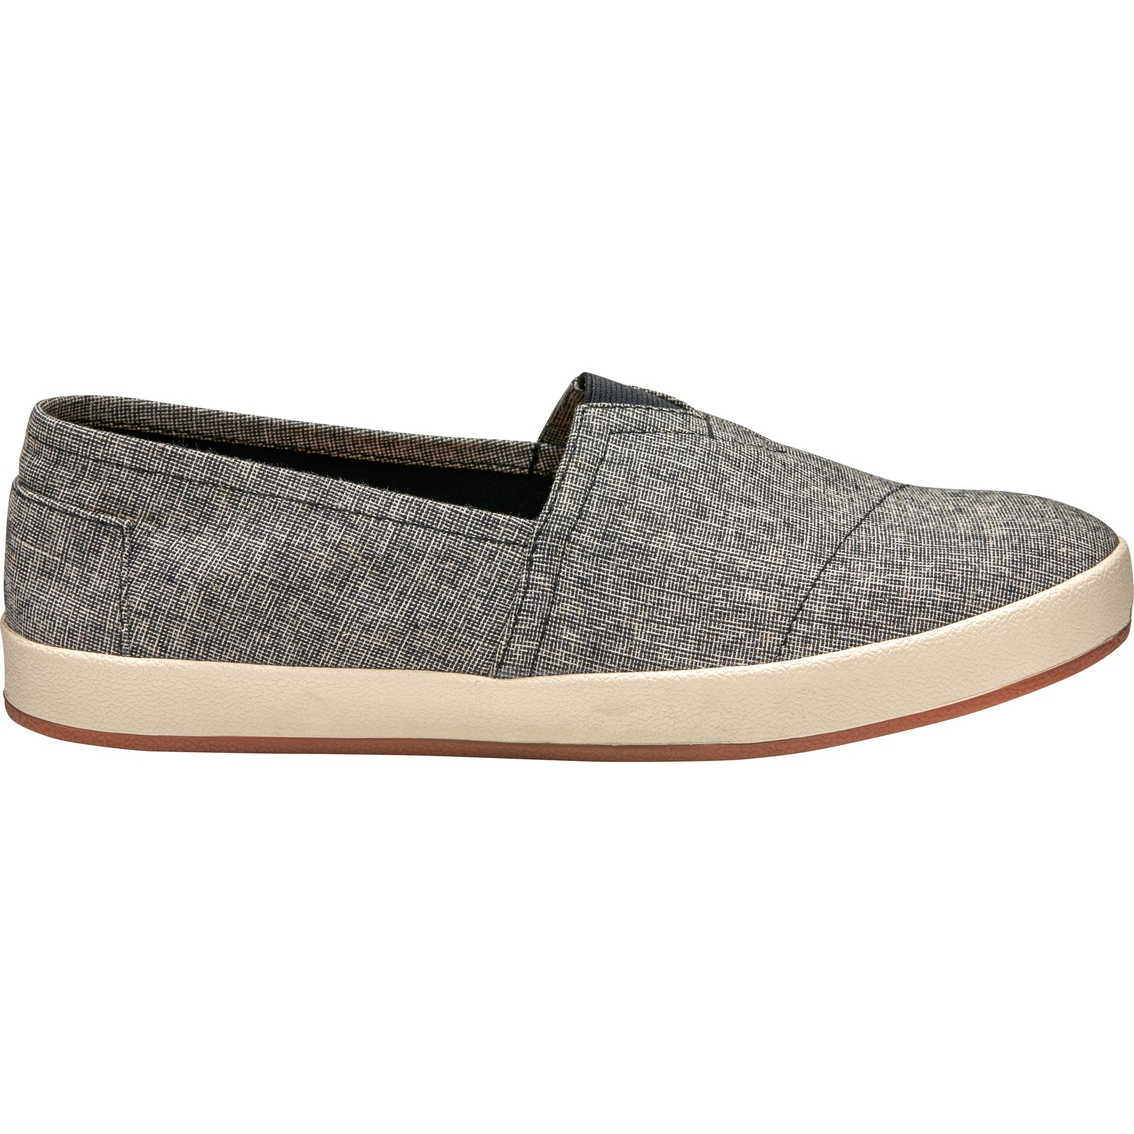 TOMS Black and White Texture Woven Avalon Slip On Shoes